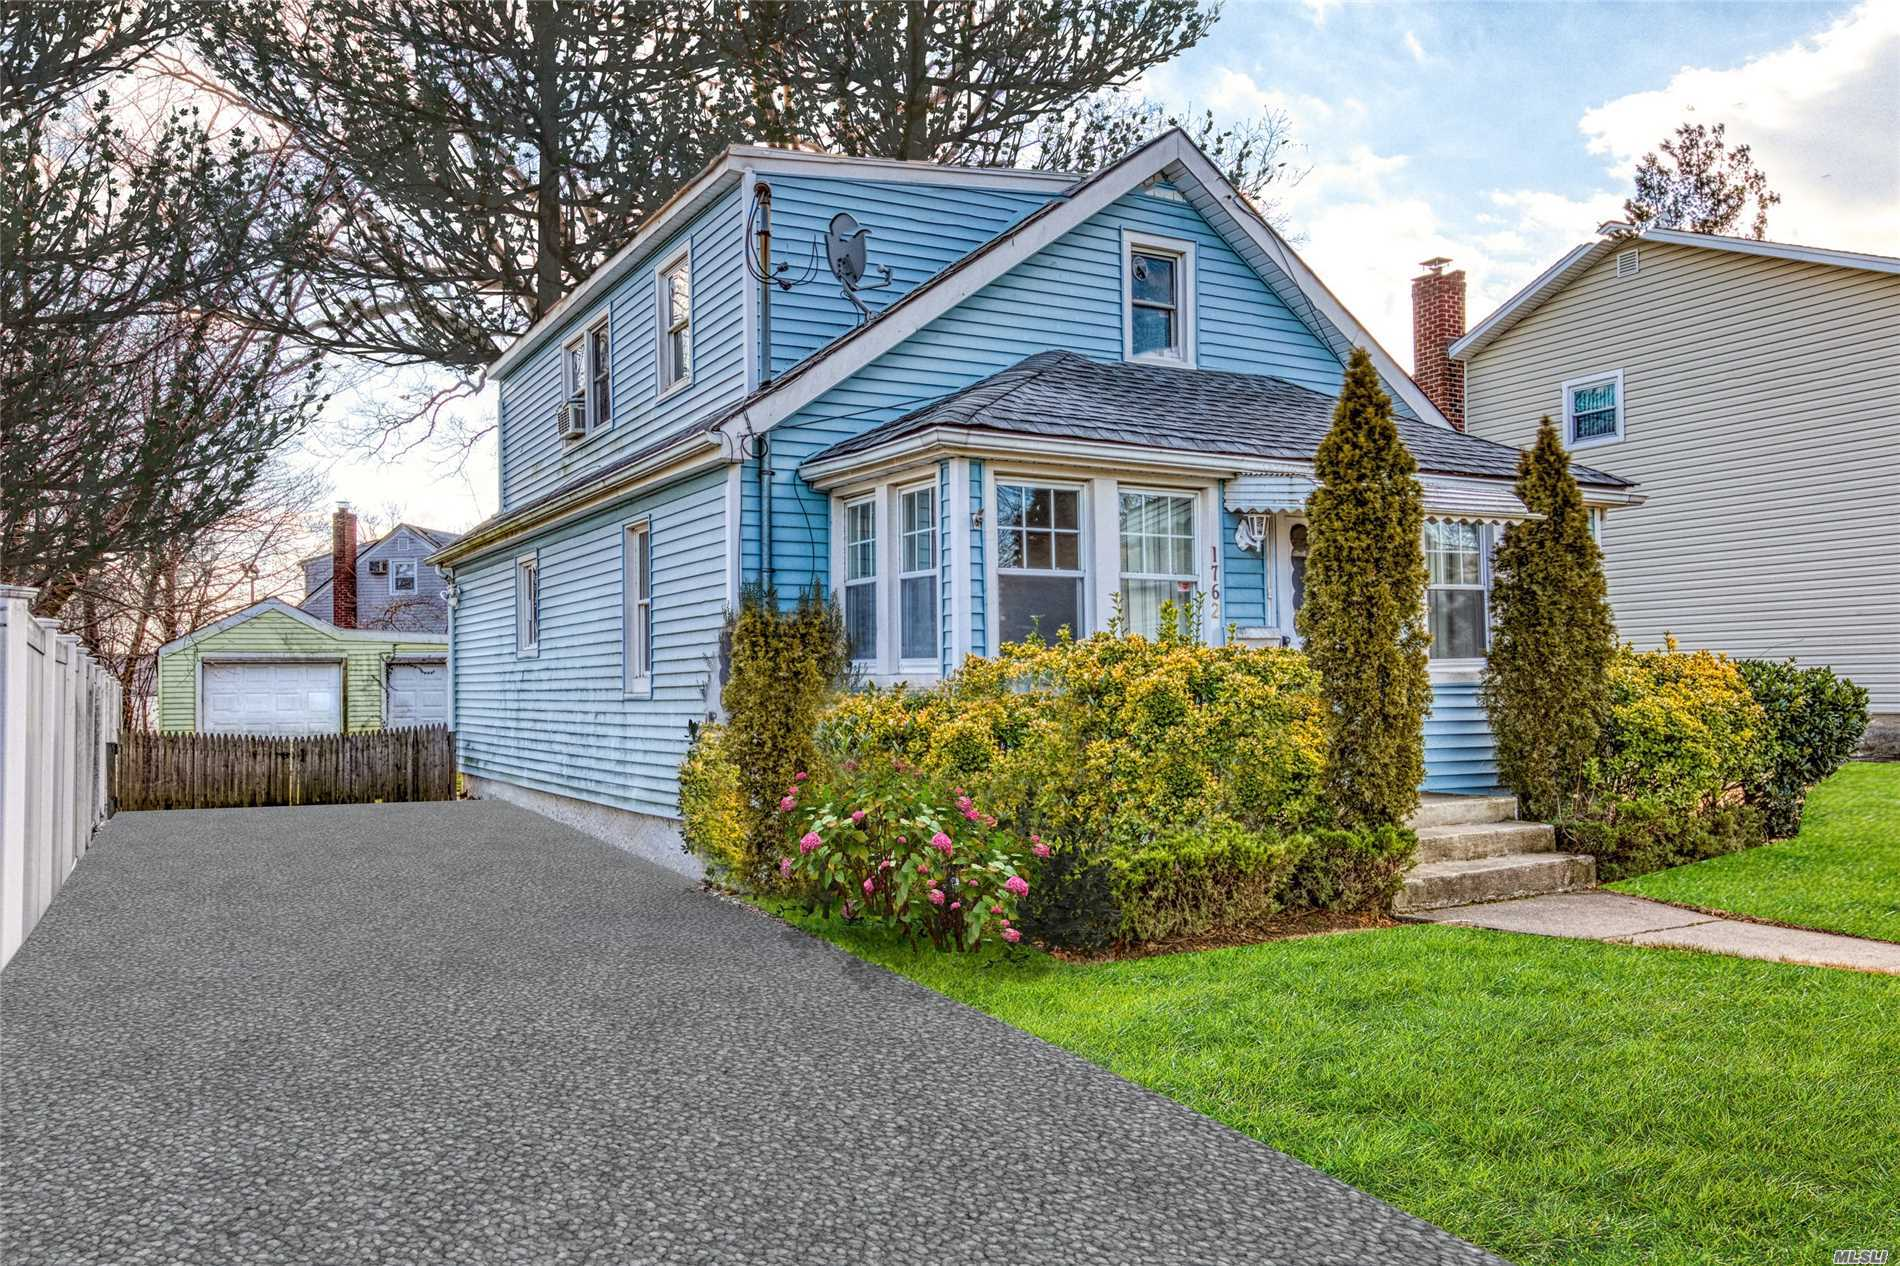 Charming 2 Bedroom, 1 Full Bath Home In N. Bellmore. Large Yard, Full Basement, Close To Public Transportation, Shops & Dining.